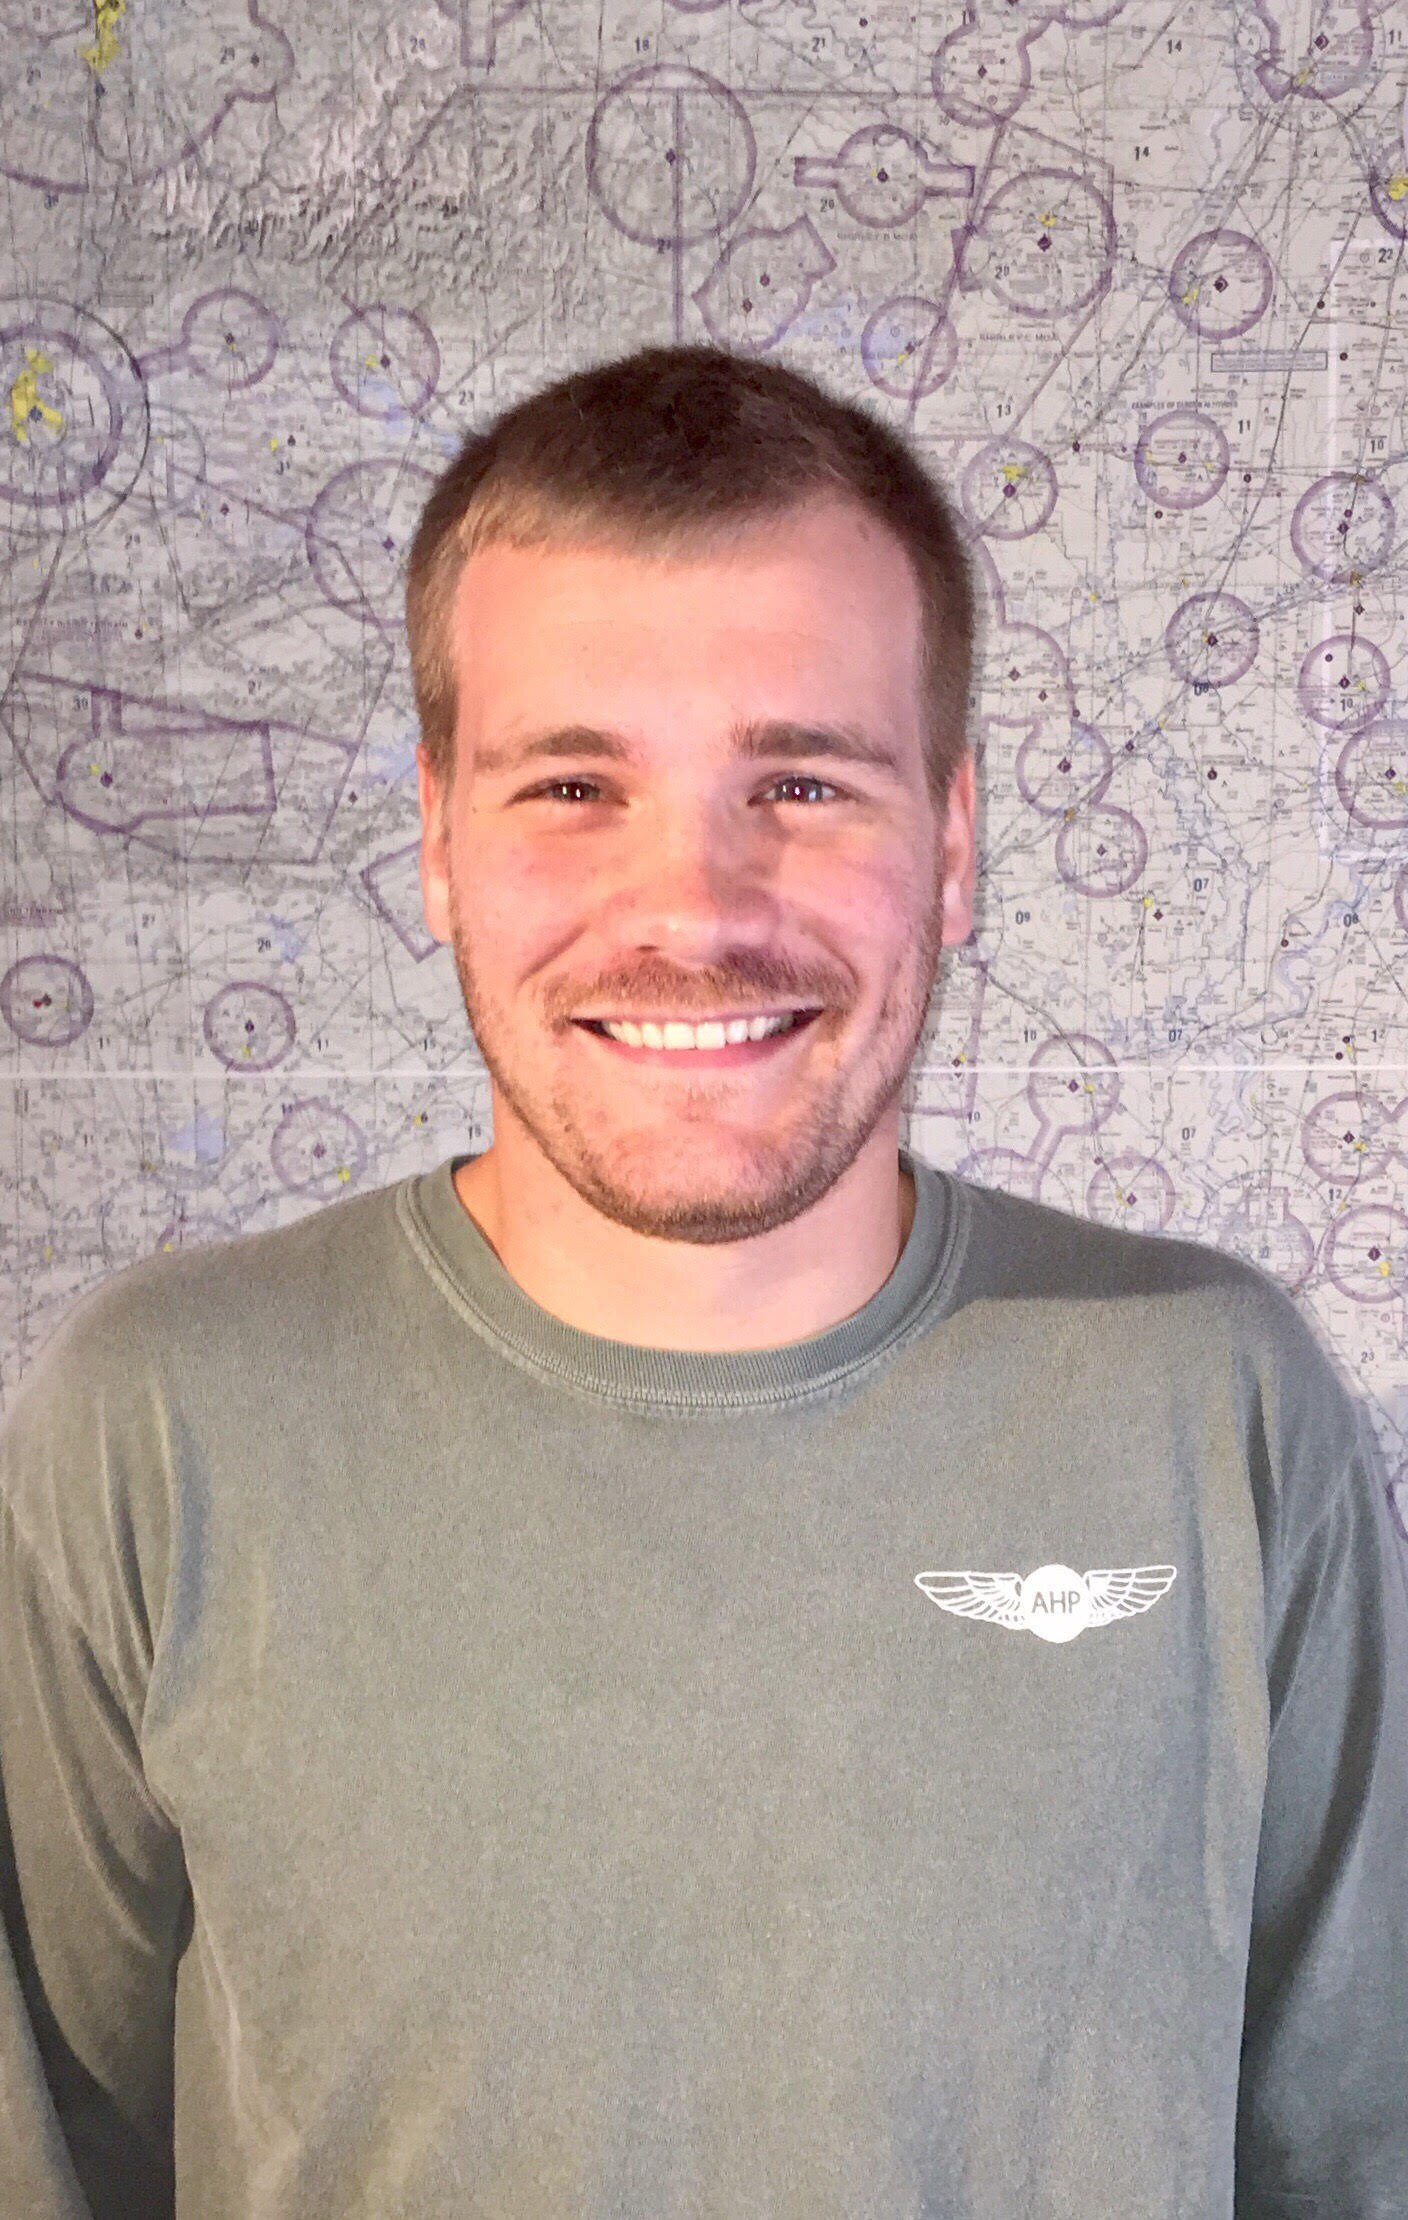 Dalton Sharp  hails from Idabel, Oklahoma. He fell in love with the rich history and traditions of aviation while learning about the World War II Era - specifically the Supermarine Spitfire.